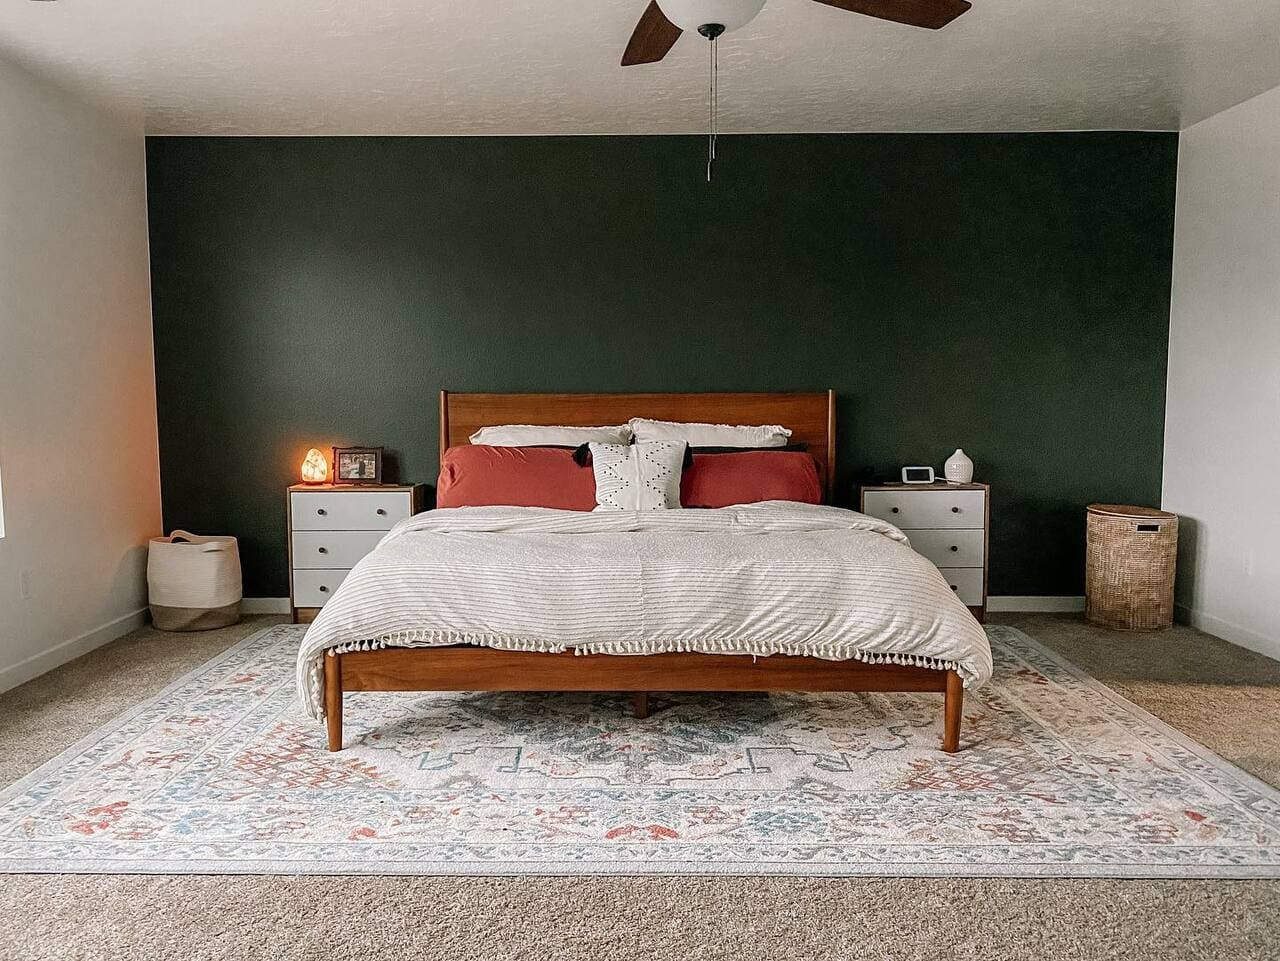 <strong>Be Unique with a Square Area Rug</strong>